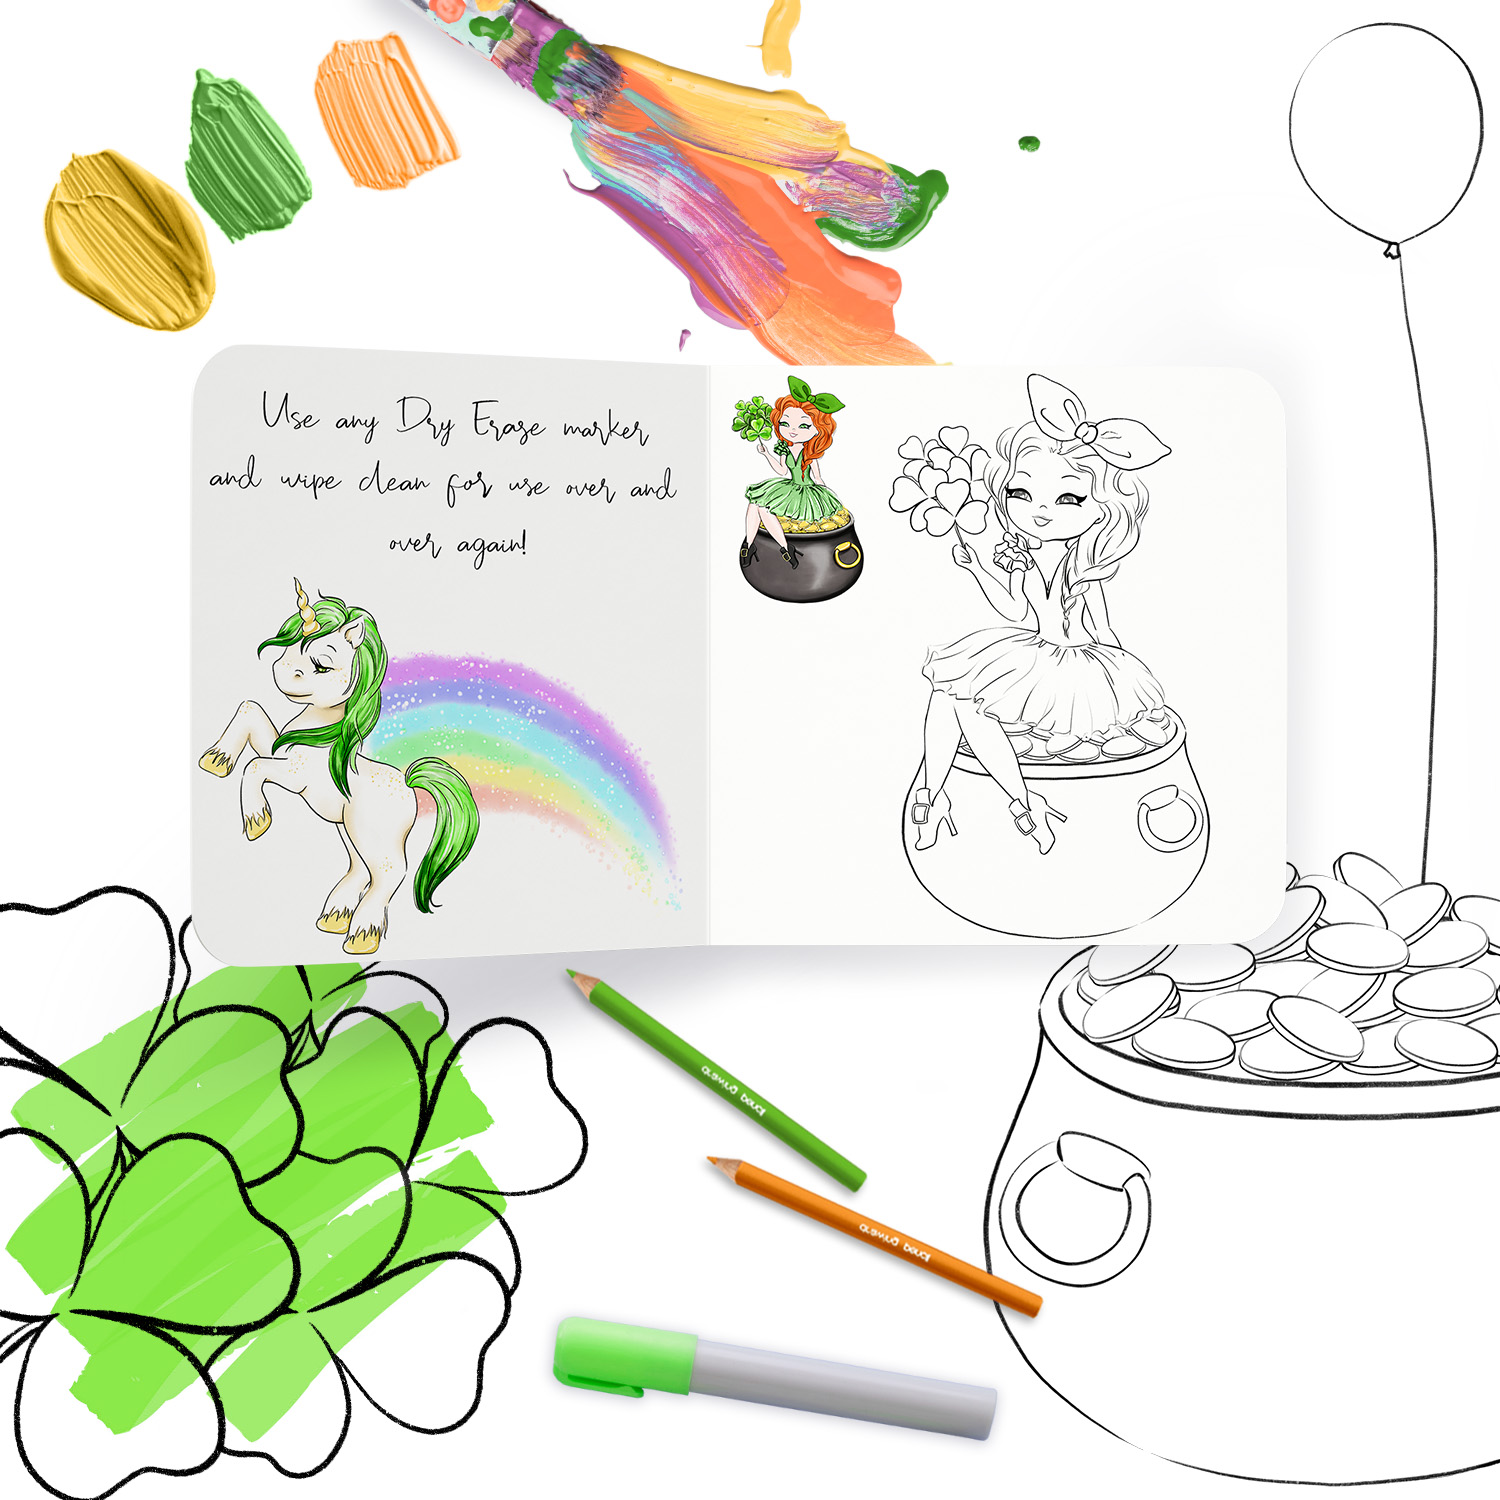 Its Your Lucky Day - Doodles example image 5